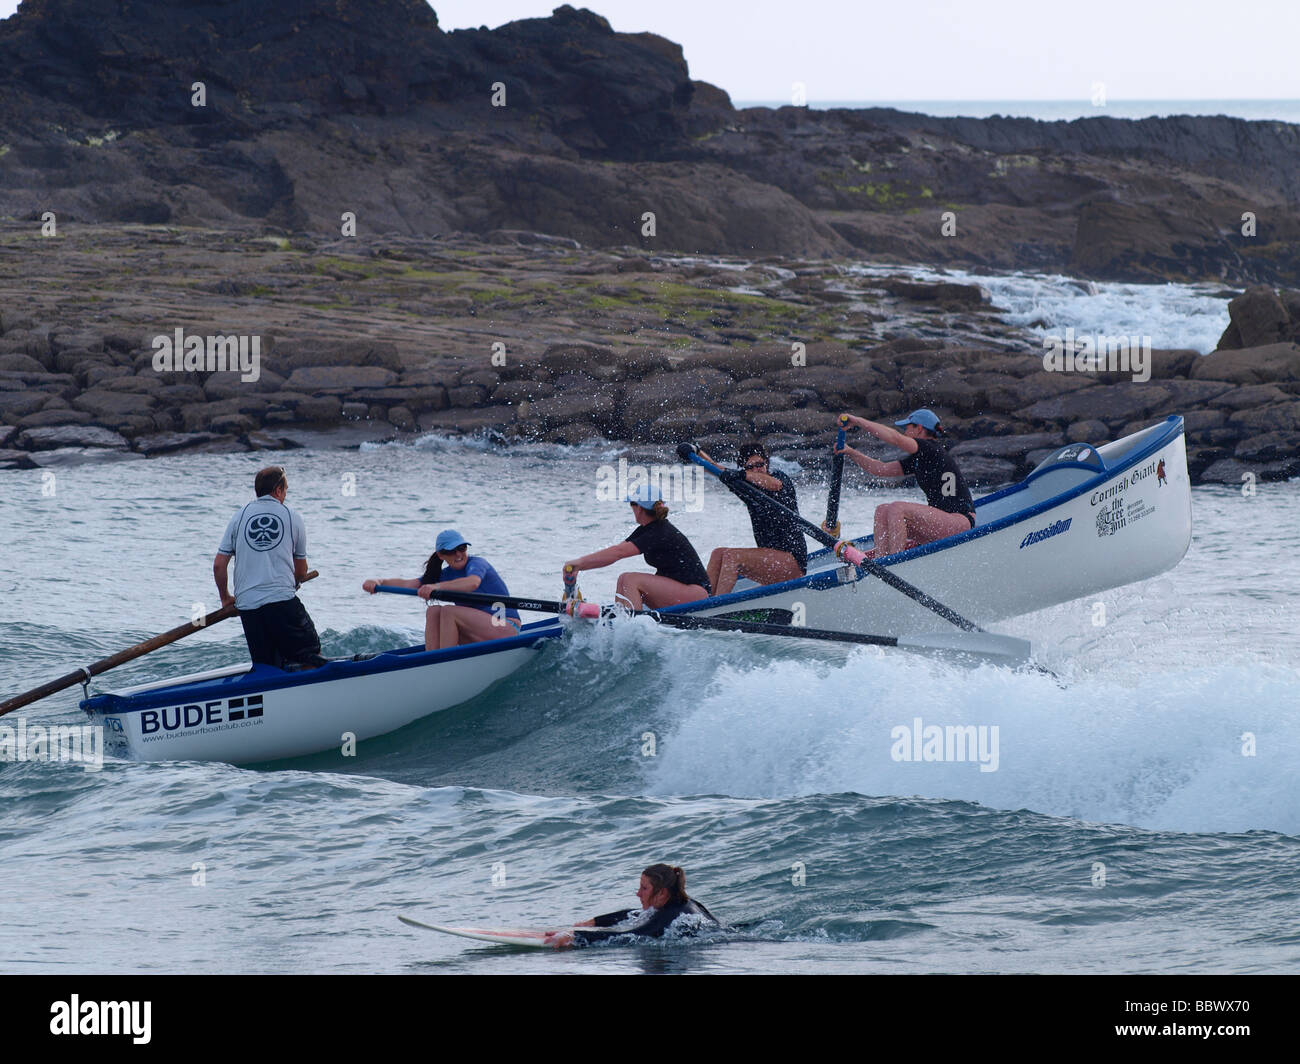 Gig boat team battling through waves - Stock Image